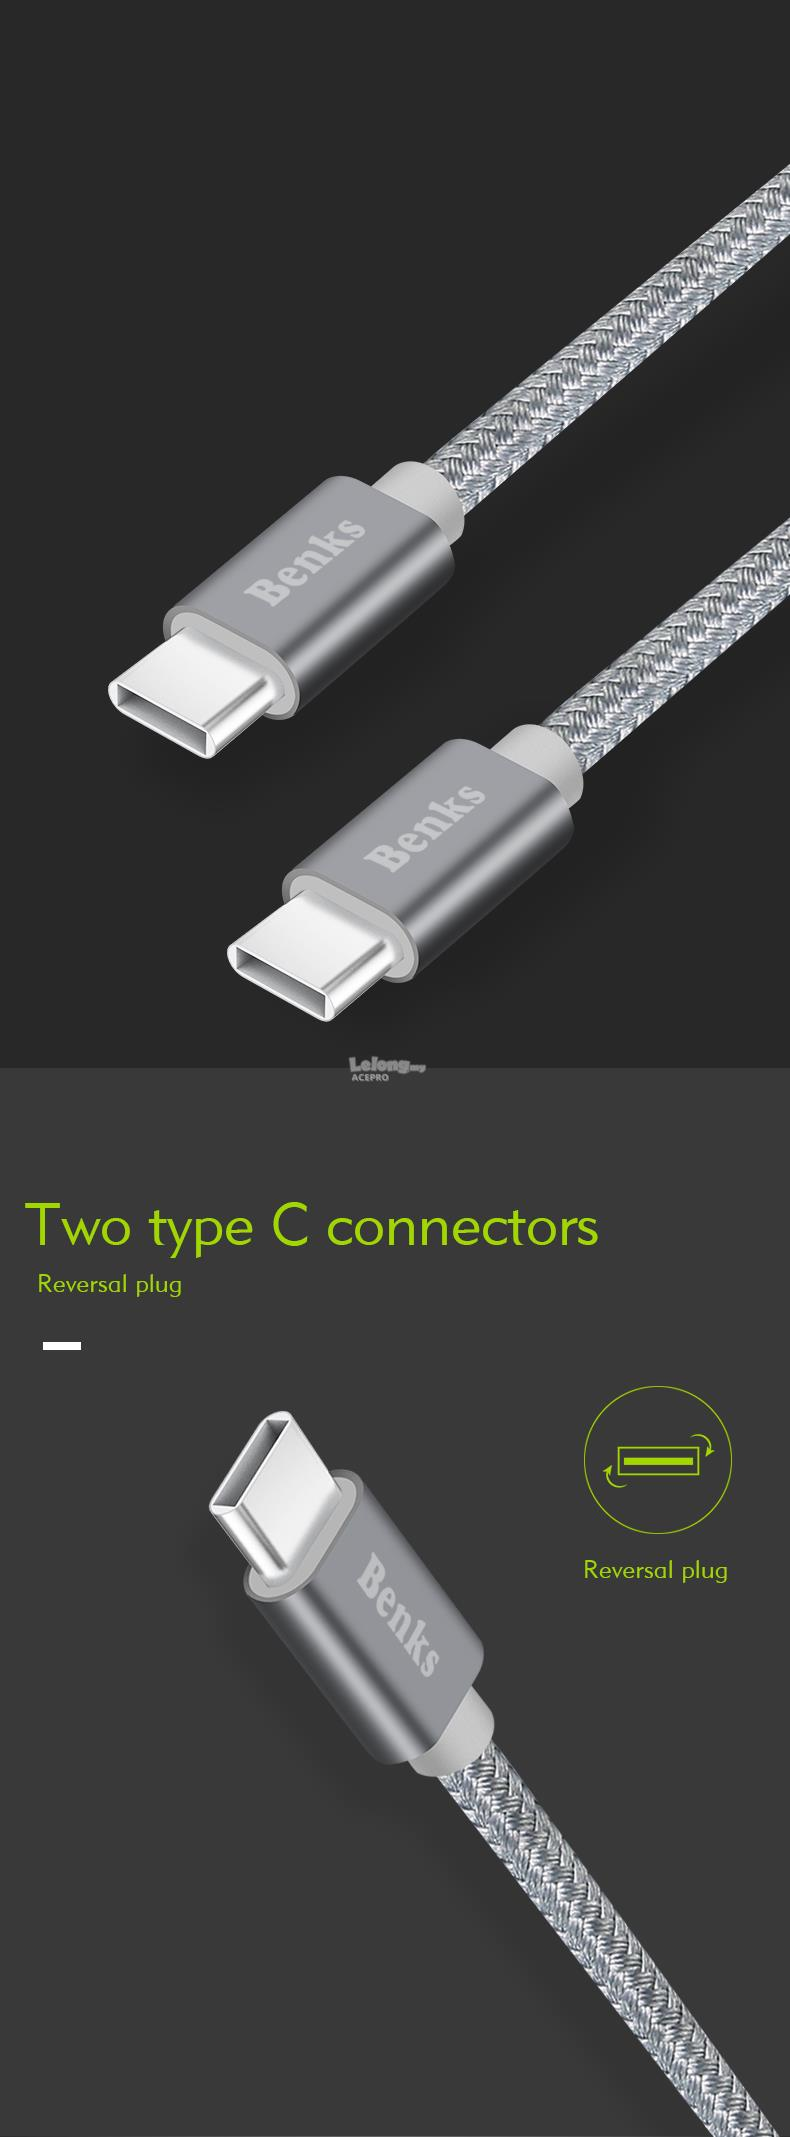 BENKS Type C to Type C 3.0 3A Fast Charging USB Cable